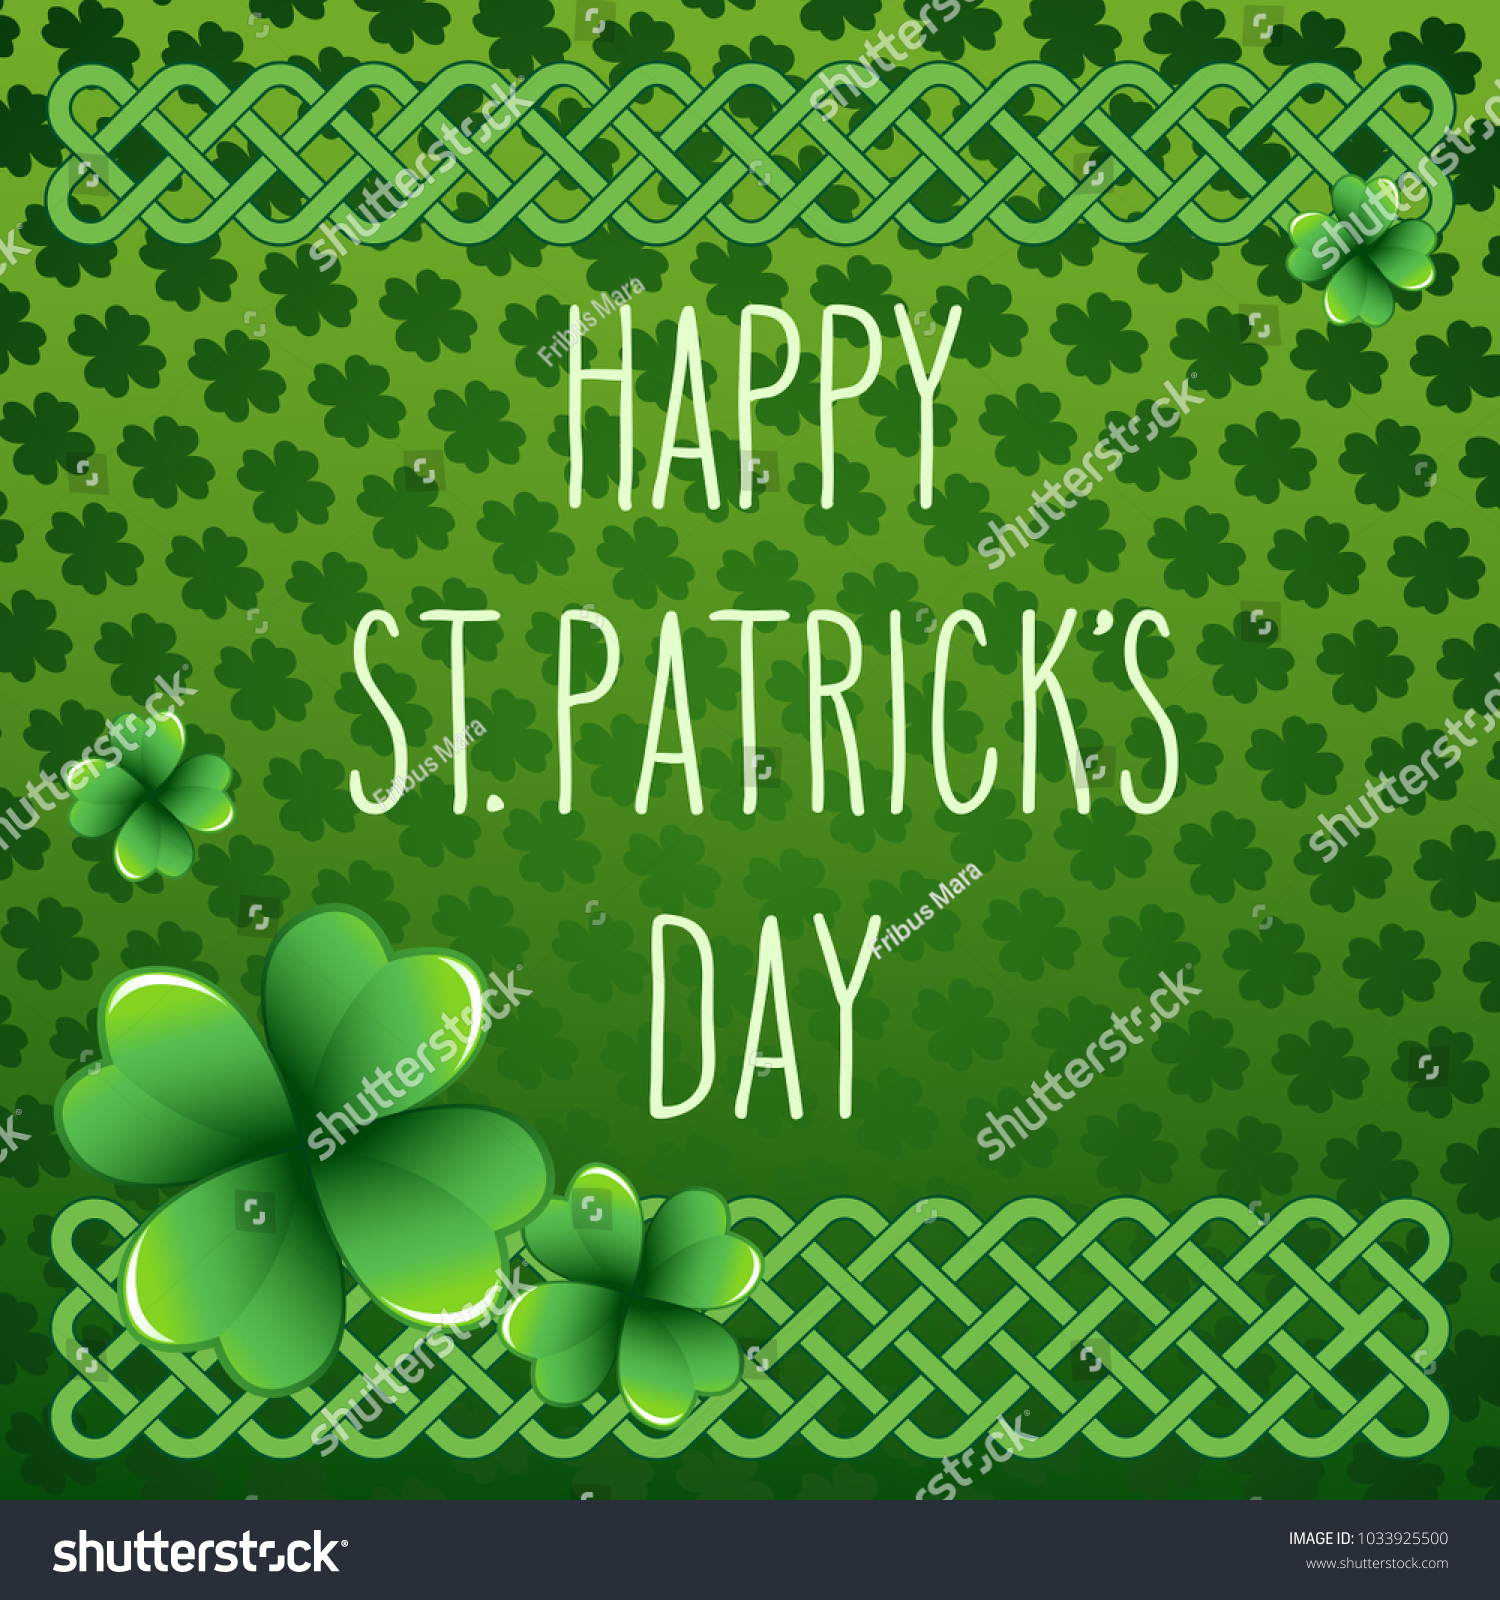 Hand Drawn St Patricks Day Greetings Stock Vector 1033925500